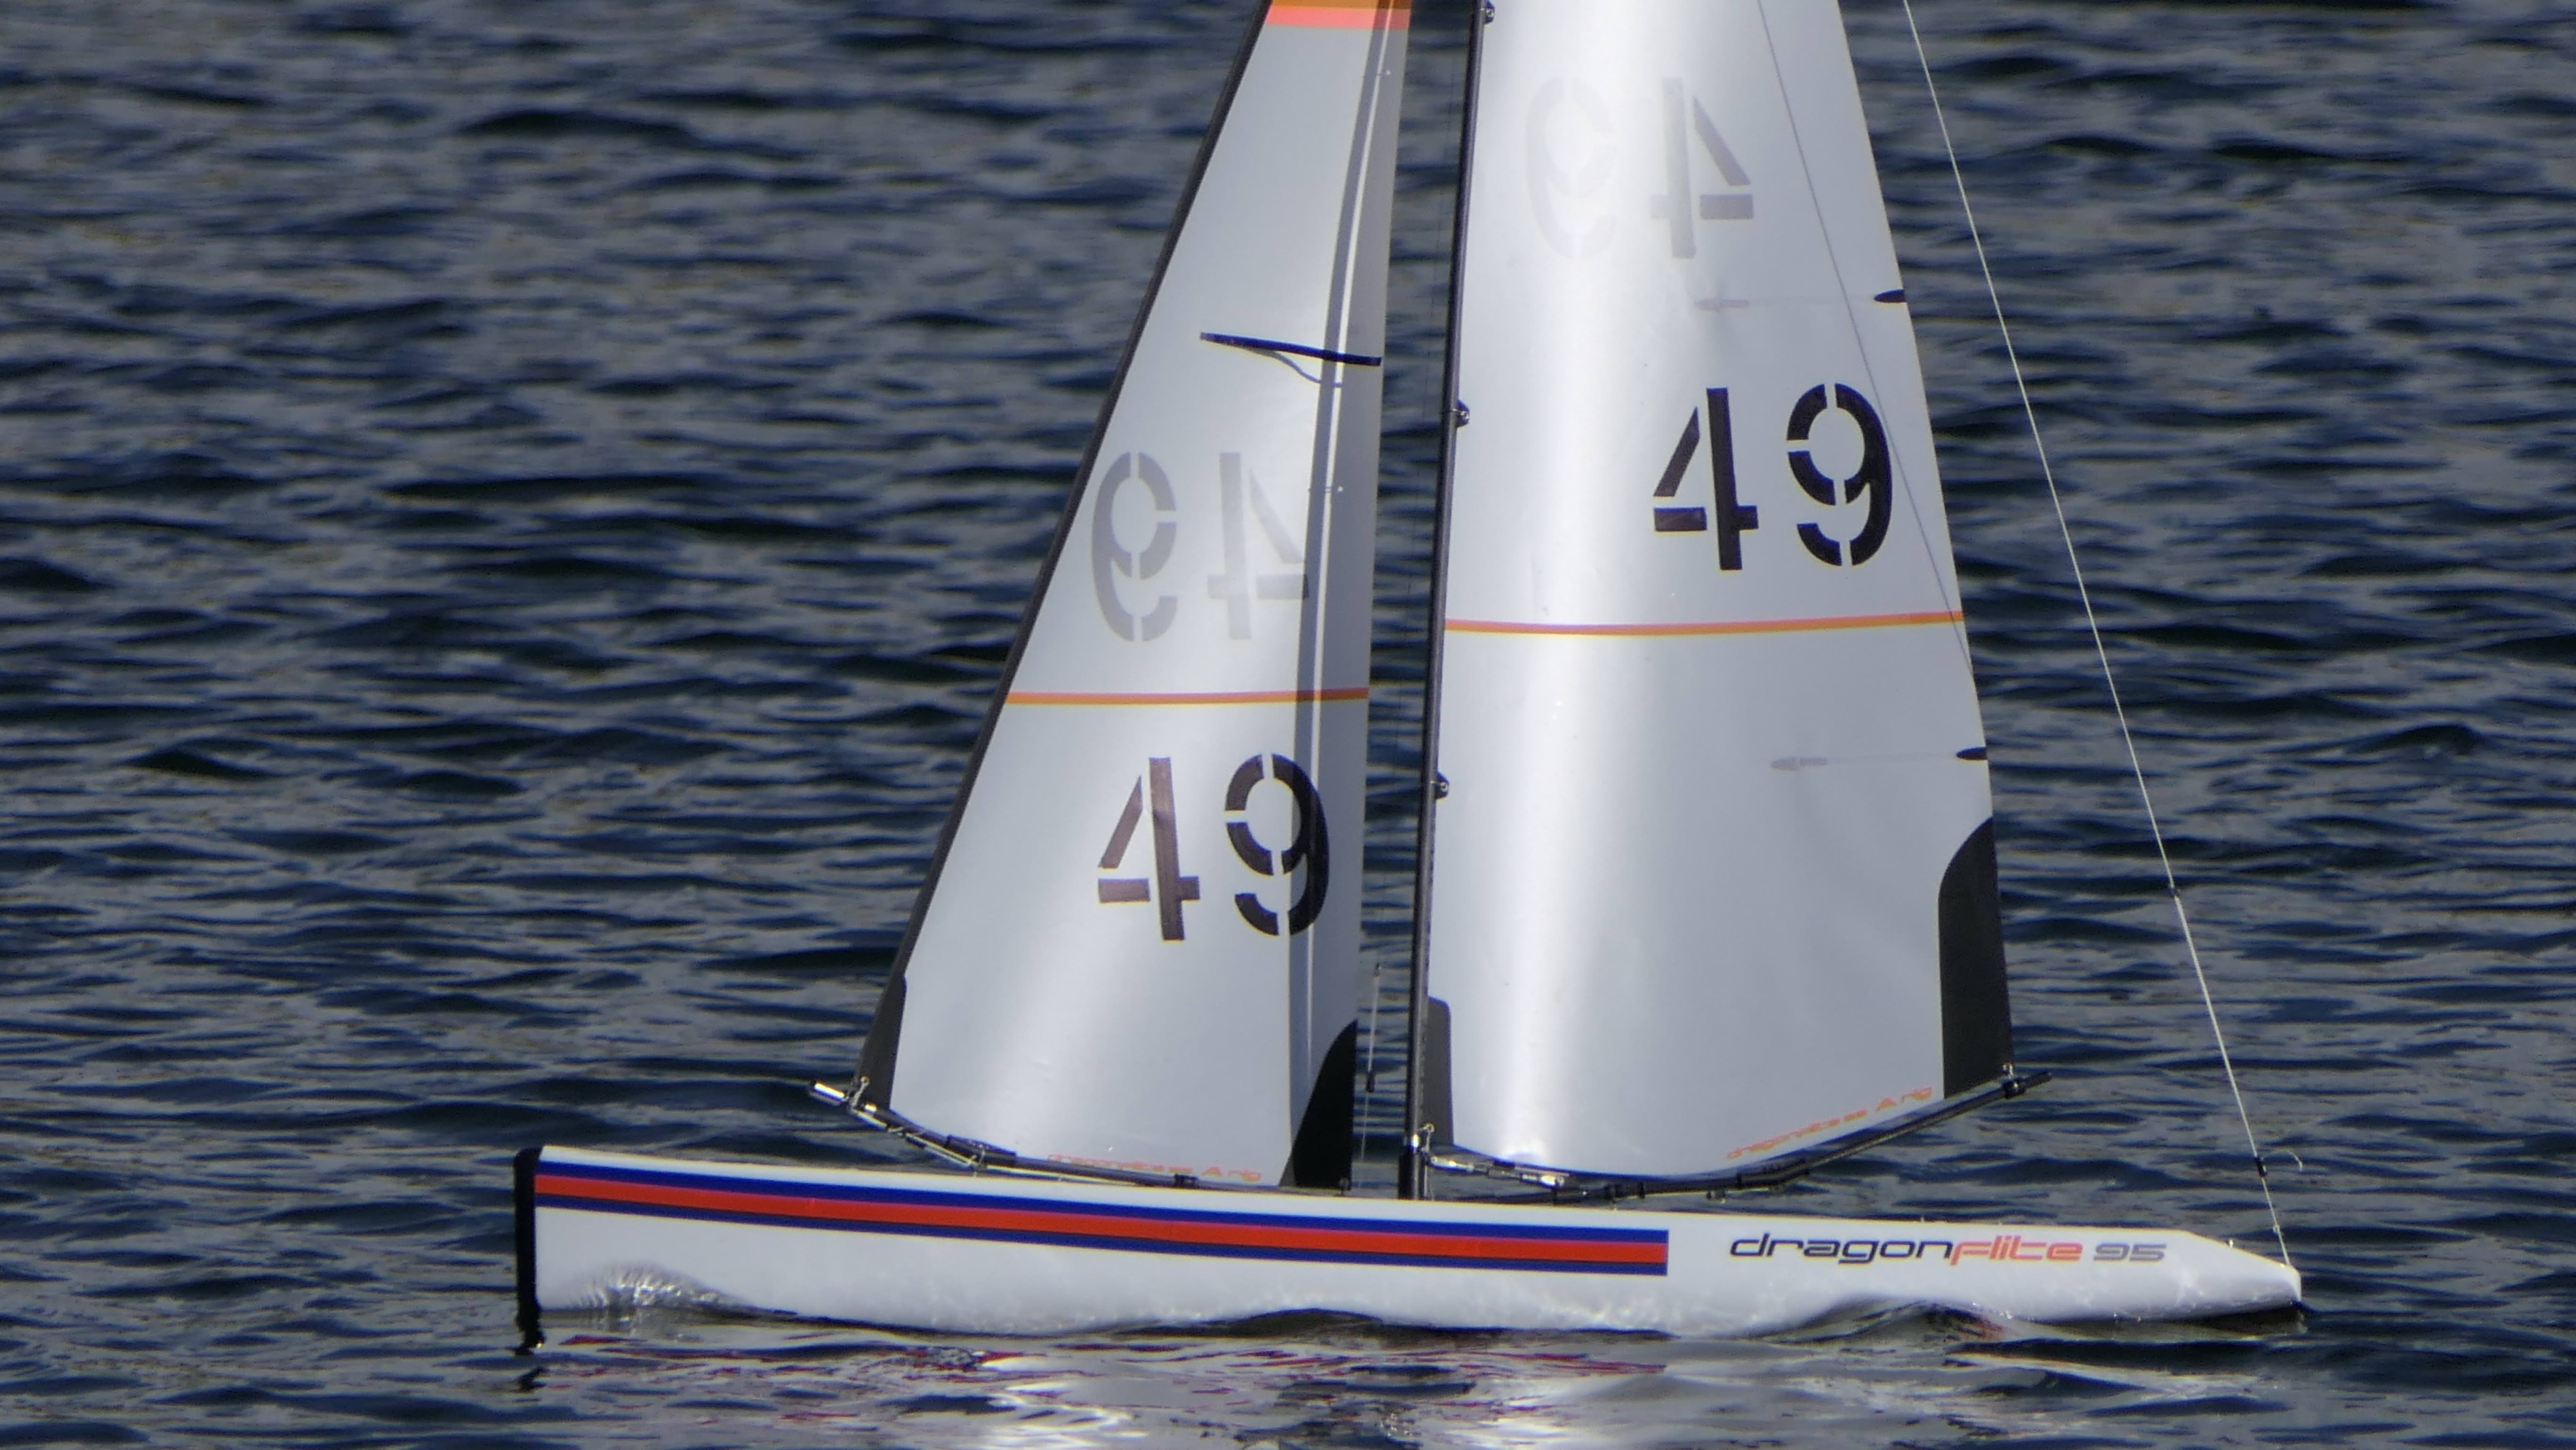 DF95winneringboat